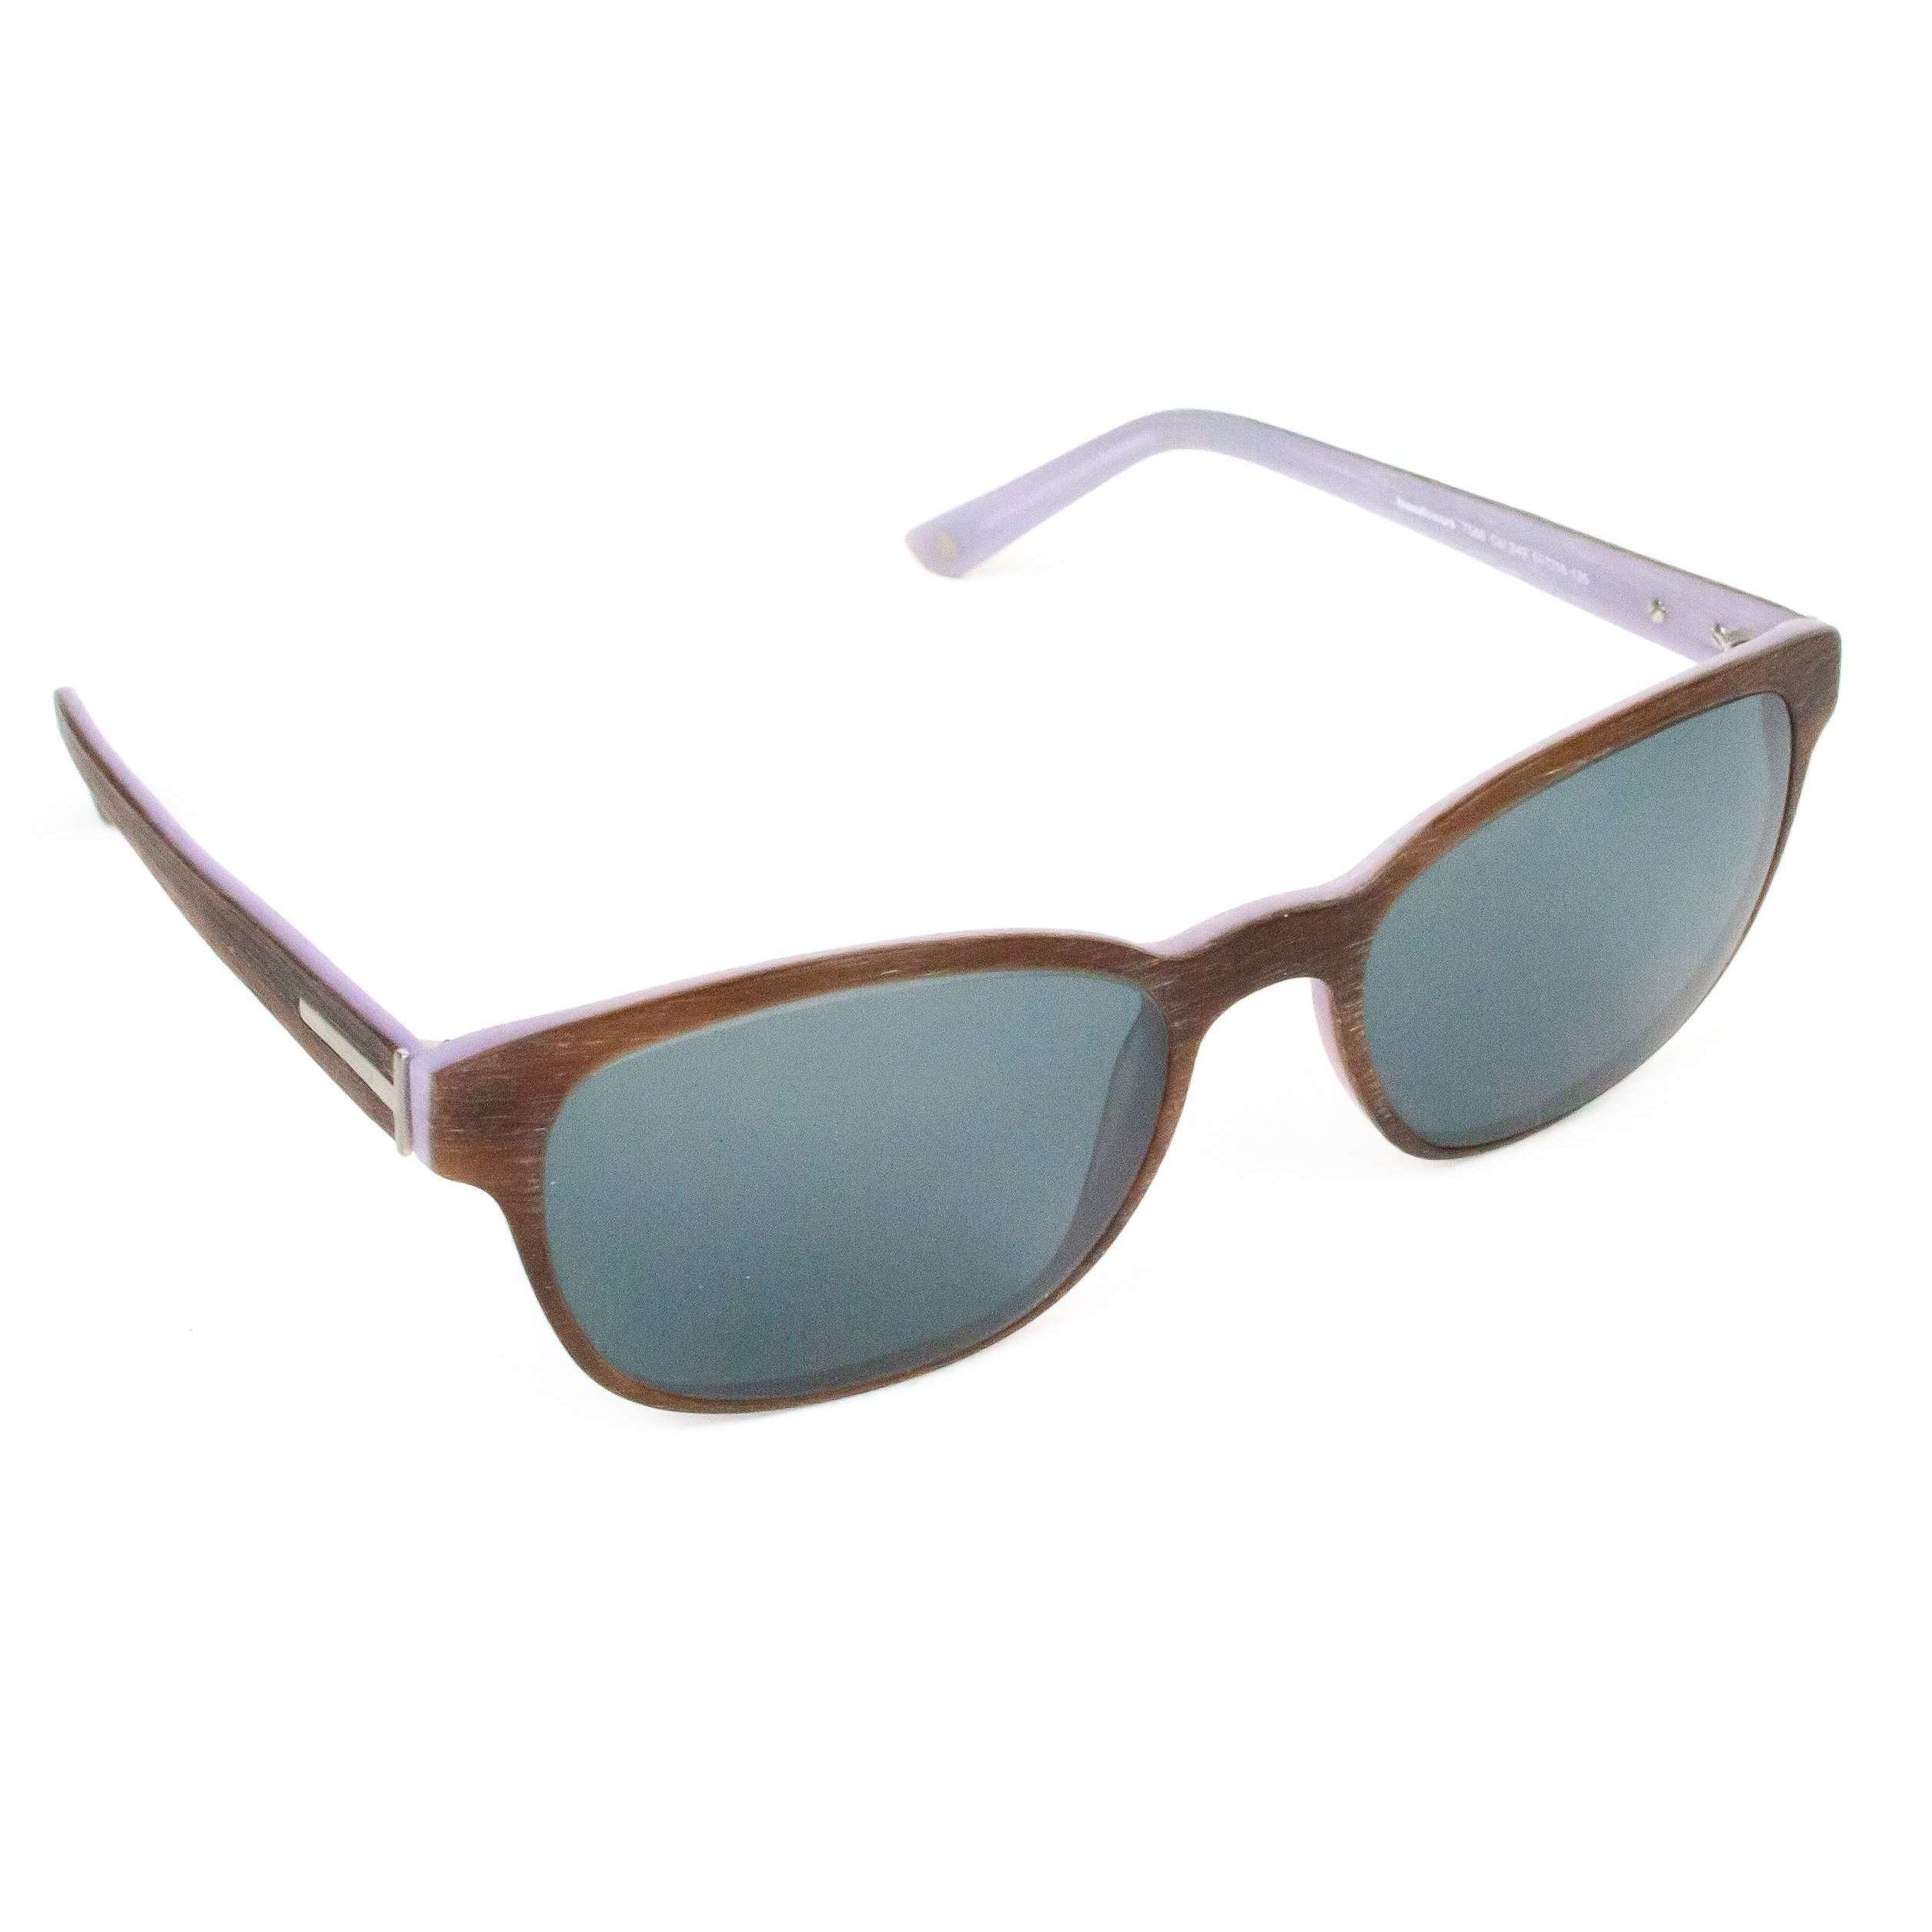 Bauhaus Model 7566 Square Sunglasses